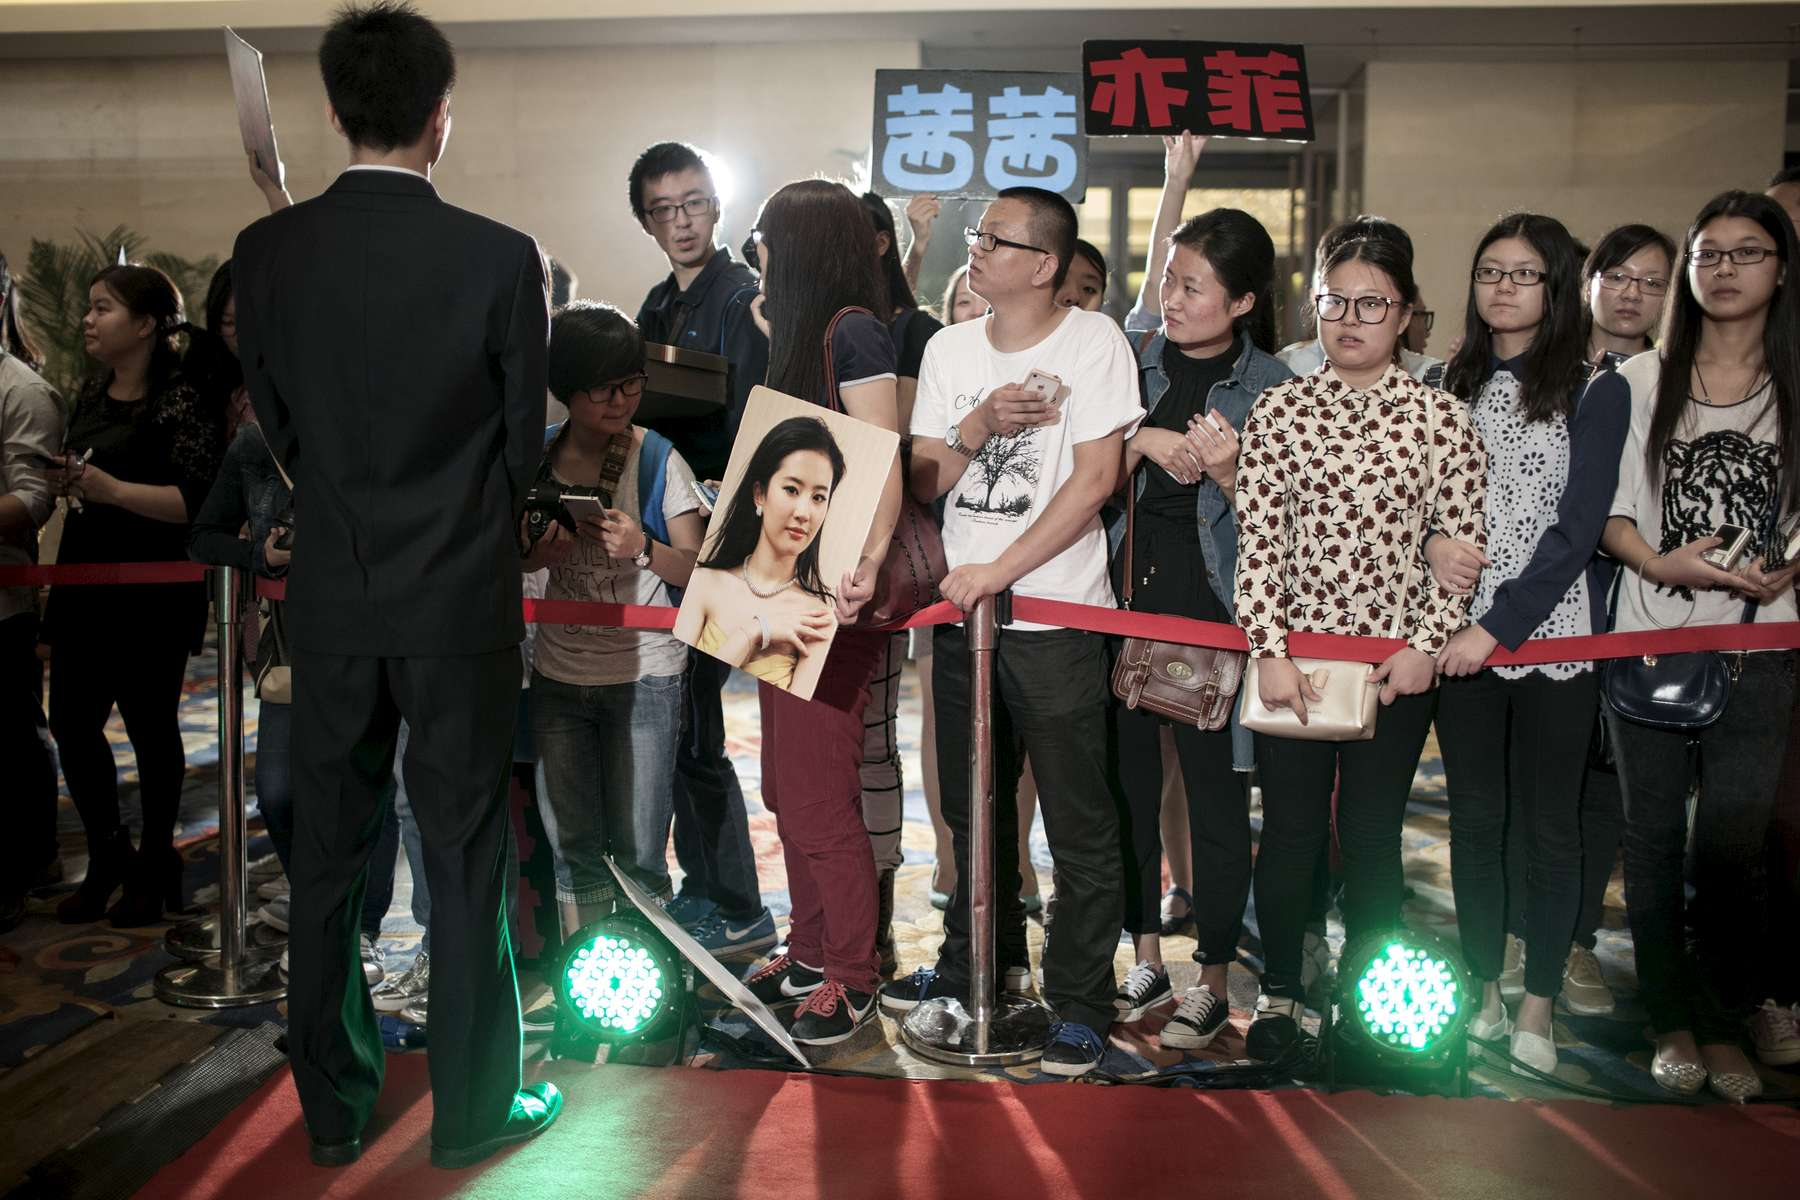 Younge fans on the red Carpet for the Premiere of a big US/China coproduction movie, \{quote}Outcast\{quote} feauturing Nicholas Cage, September 2014